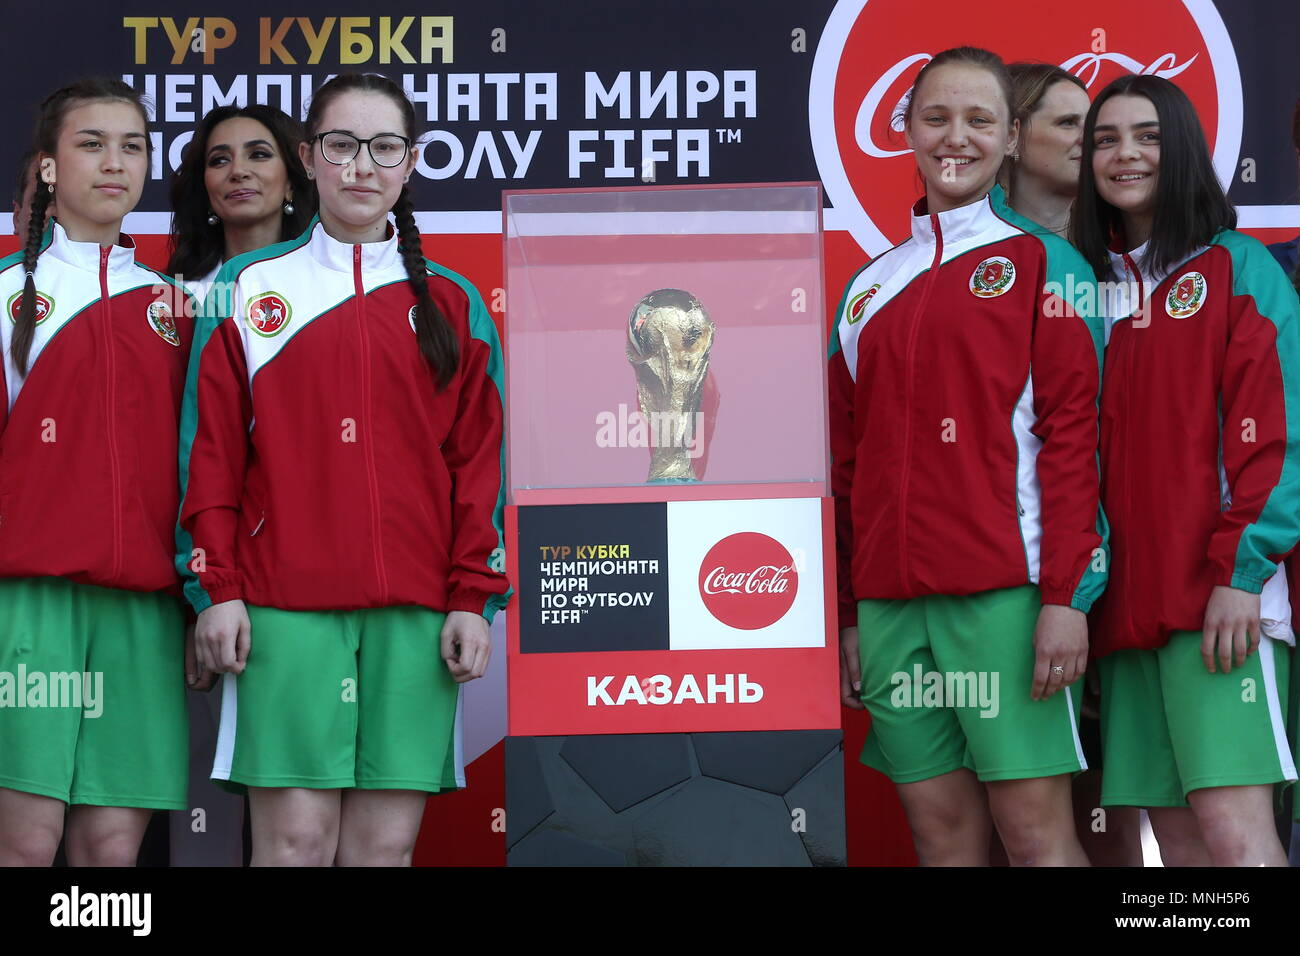 Wonderful Club World Cup 2018 - kazan-russia-17th-may-2018-kazan-russia-may-17-2018-players-of-the-kadety-cadets-womens-football-club-during-a-ceremony-to-welcome-the-2018-fifa-world-cup-trophy-yegor-aleyevtass-credit-itar-tass-news-agencyalamy-live-news-MNH5P6  Trends_364298 .jpg